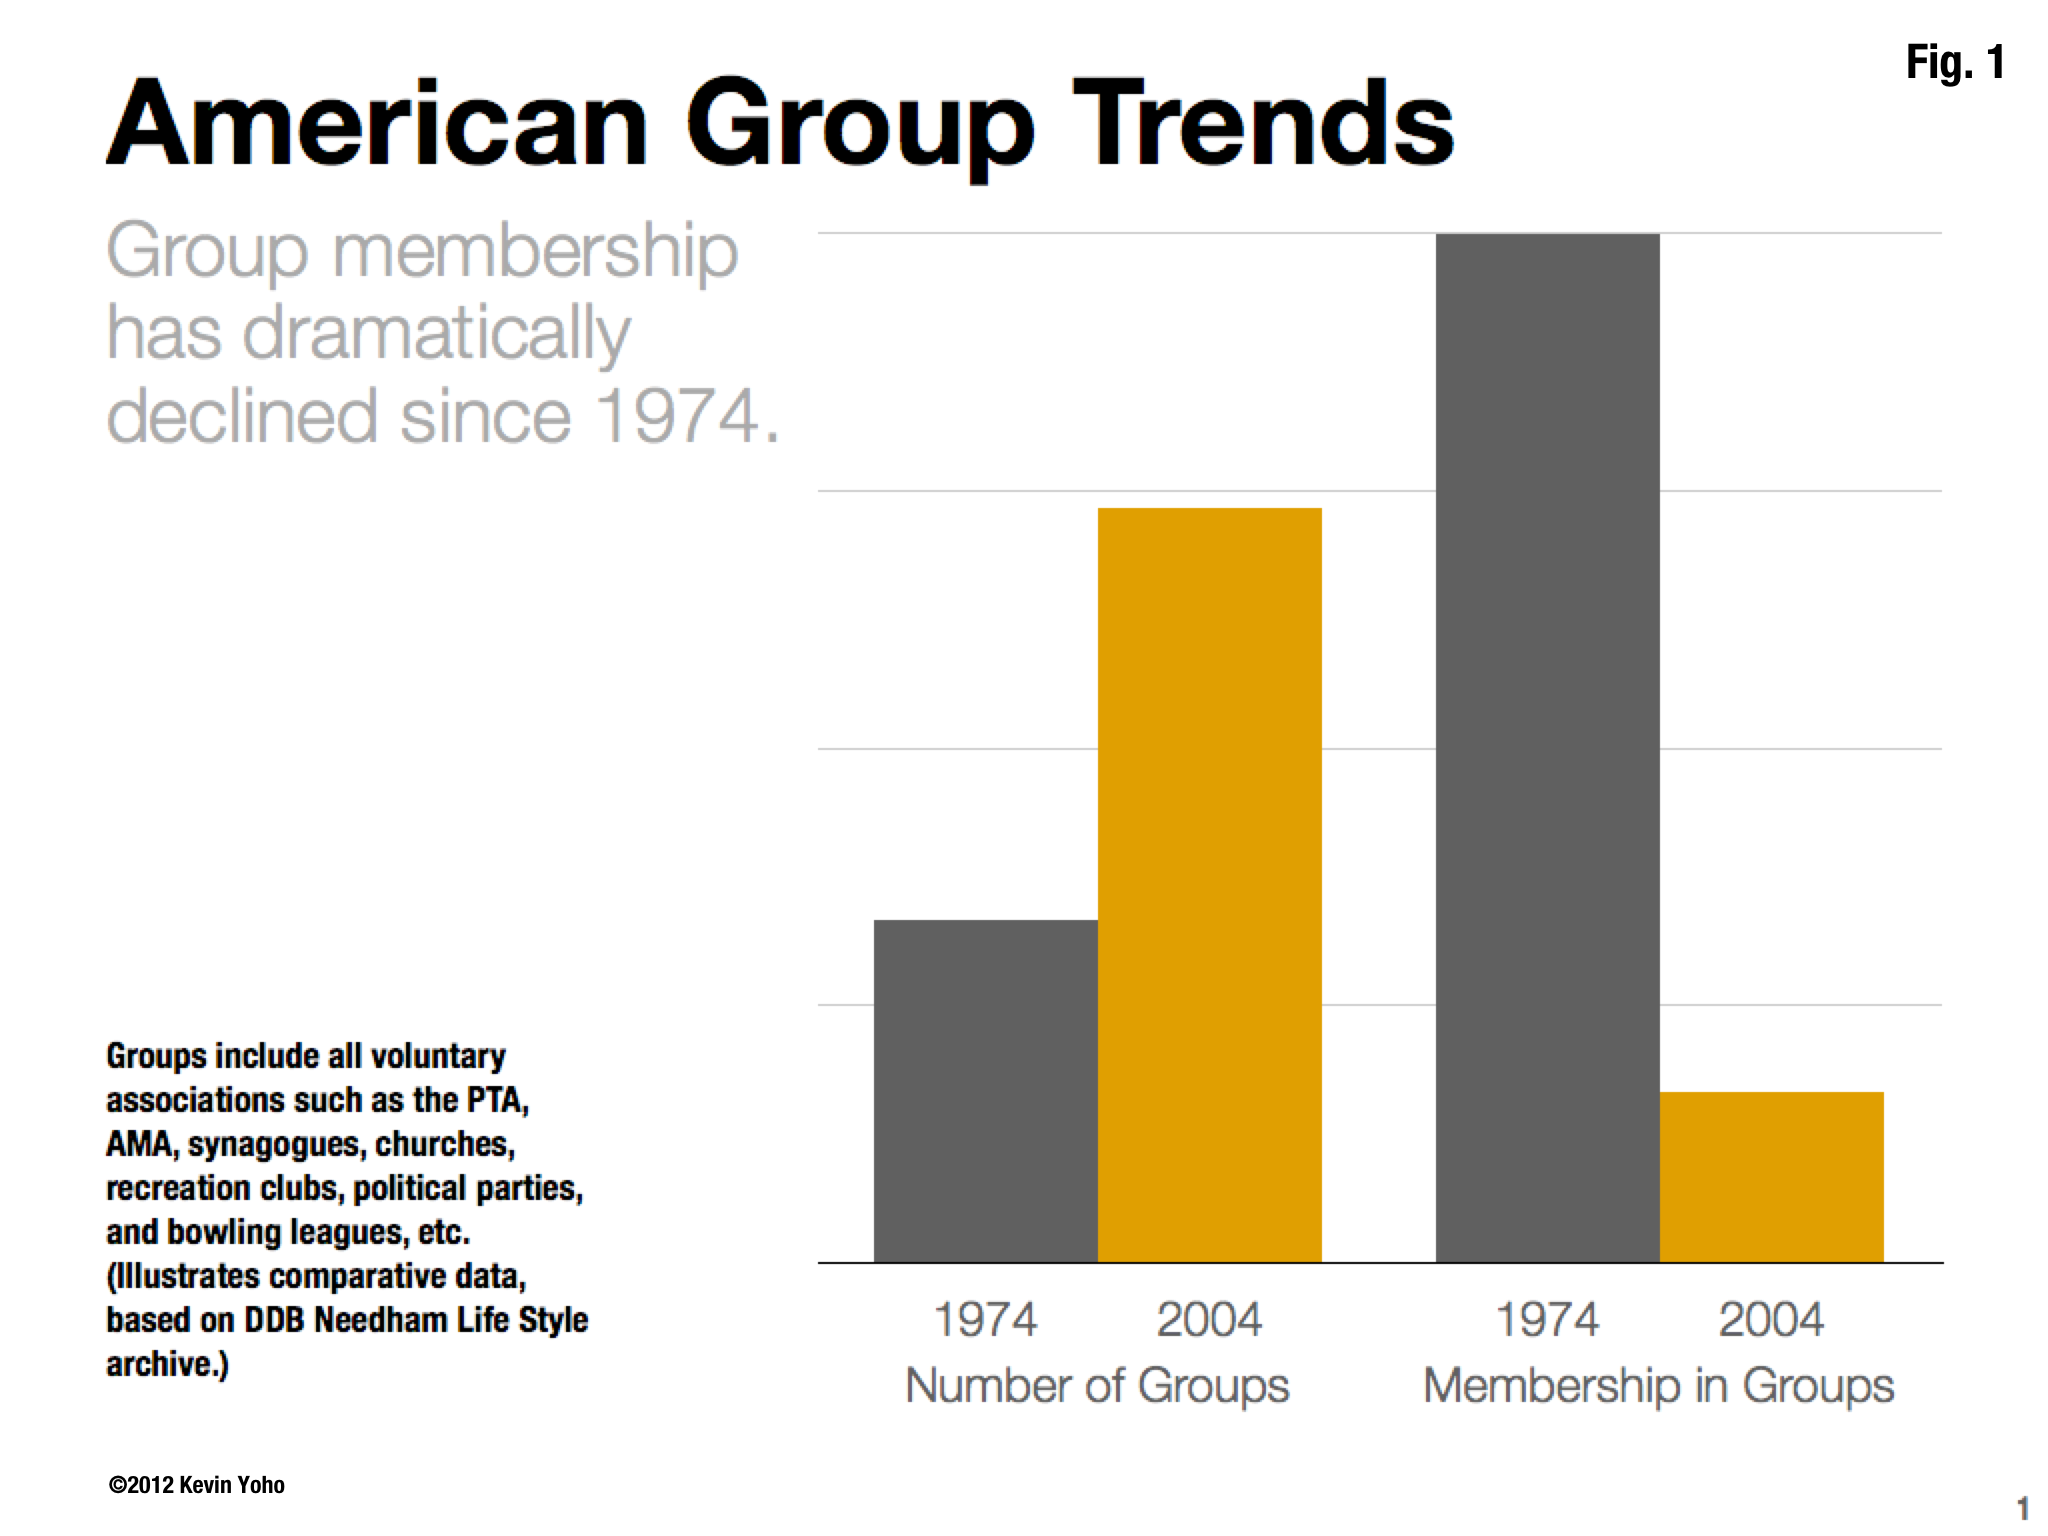 Fig. 1 - American Group Trends.